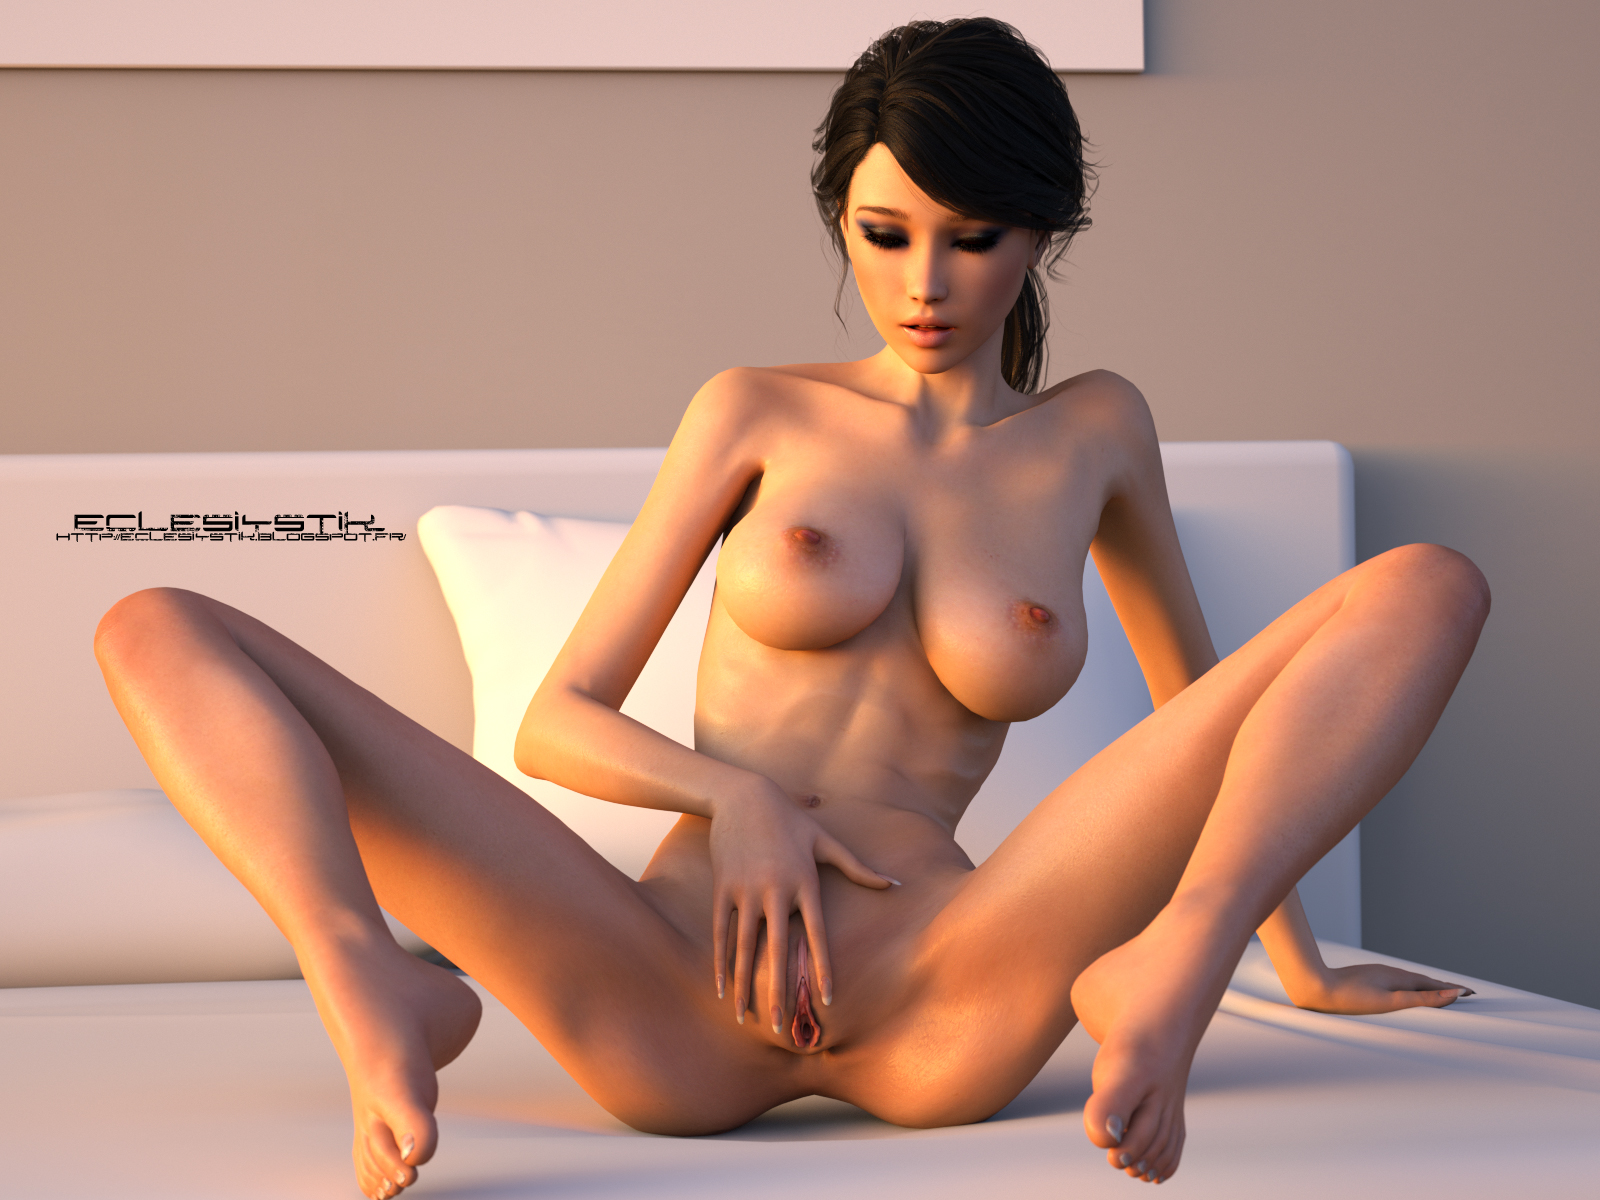 Tifa nude 3d model download sex video